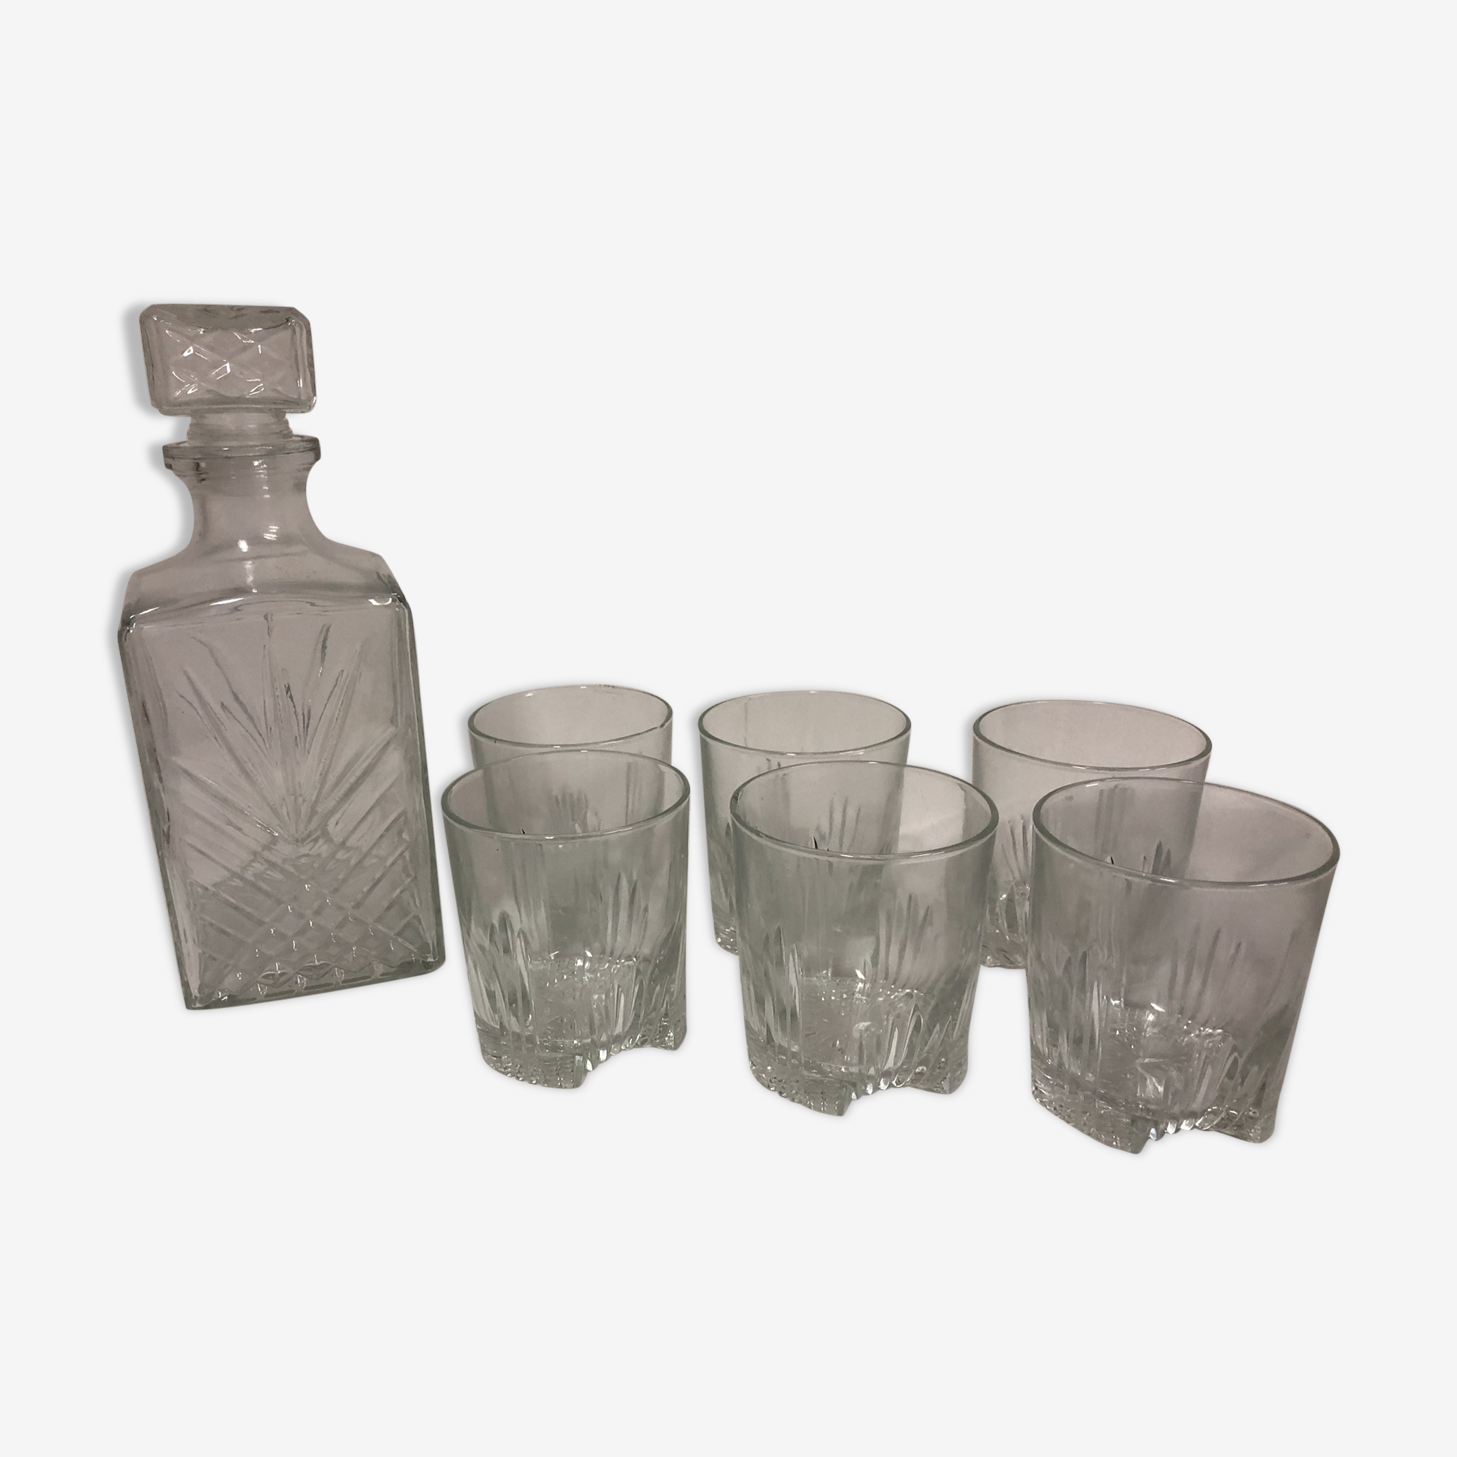 All decanter whiskey and glasses